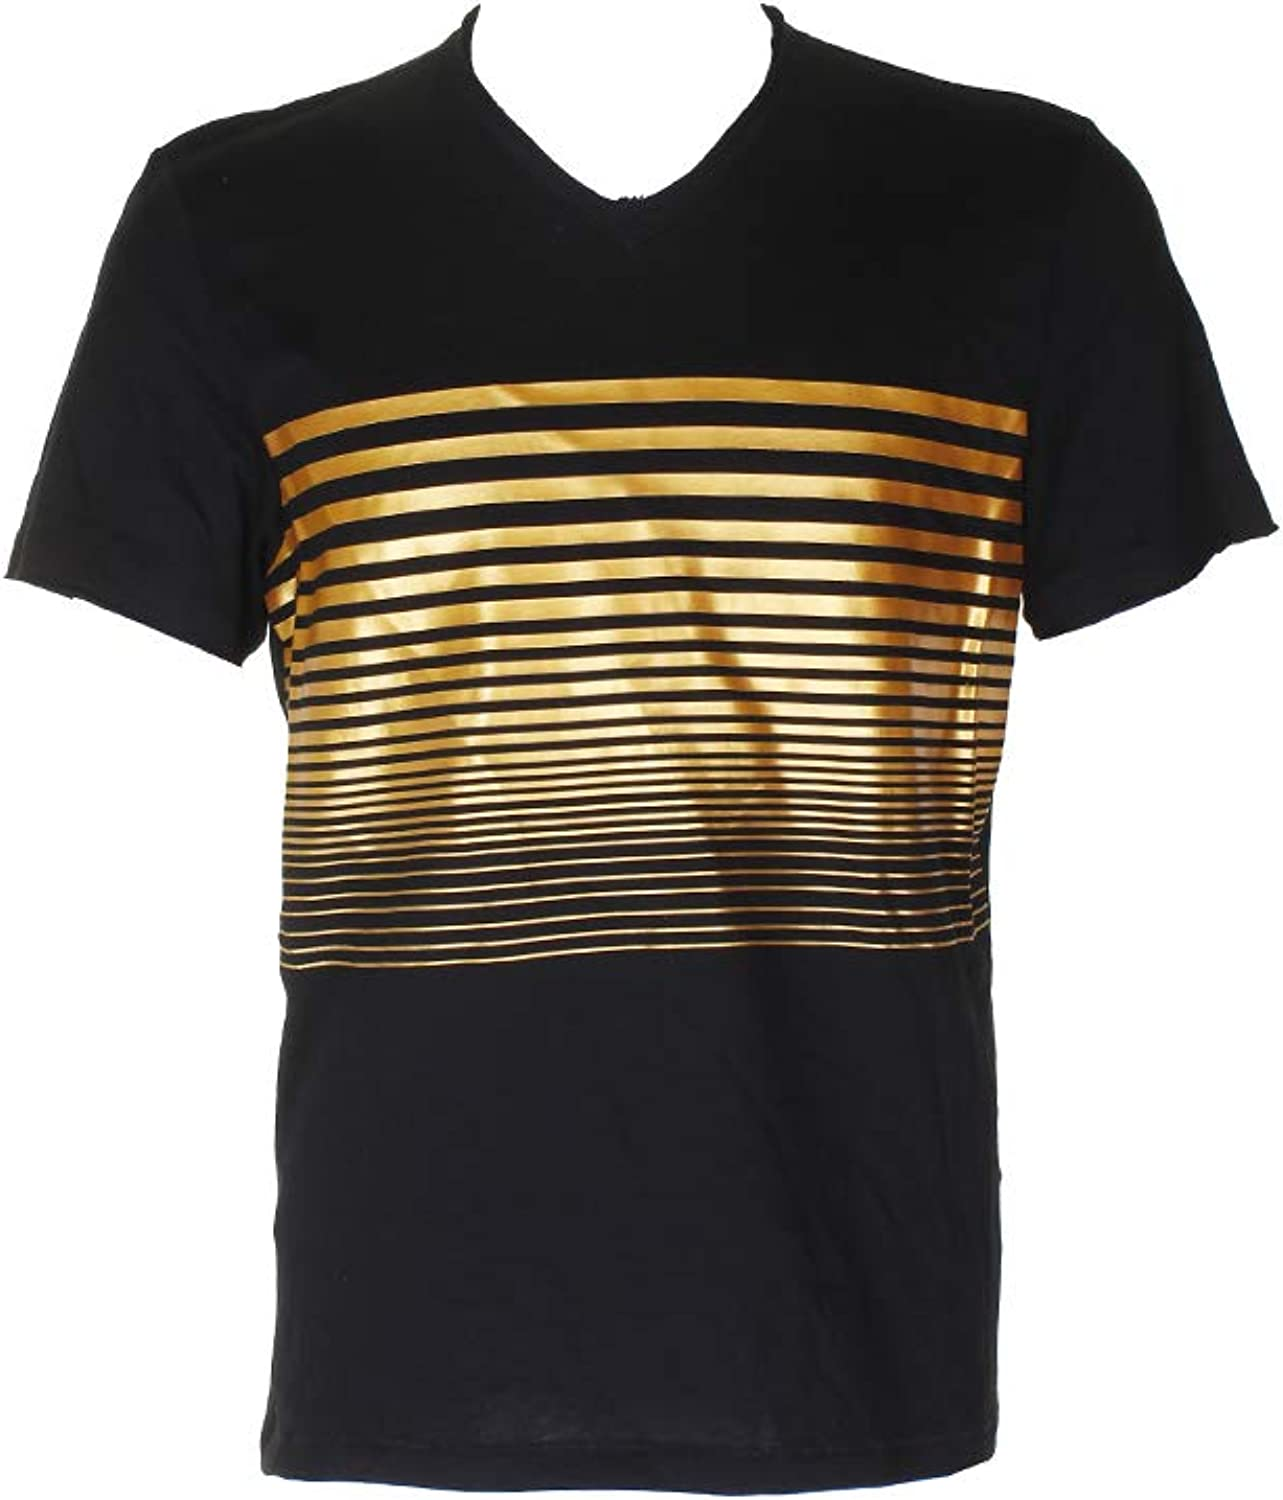 cf9370a7541ed7 I-N-C Mens Solid Solid Solid Graphic T-Shirt a41640 - wkuwn ...